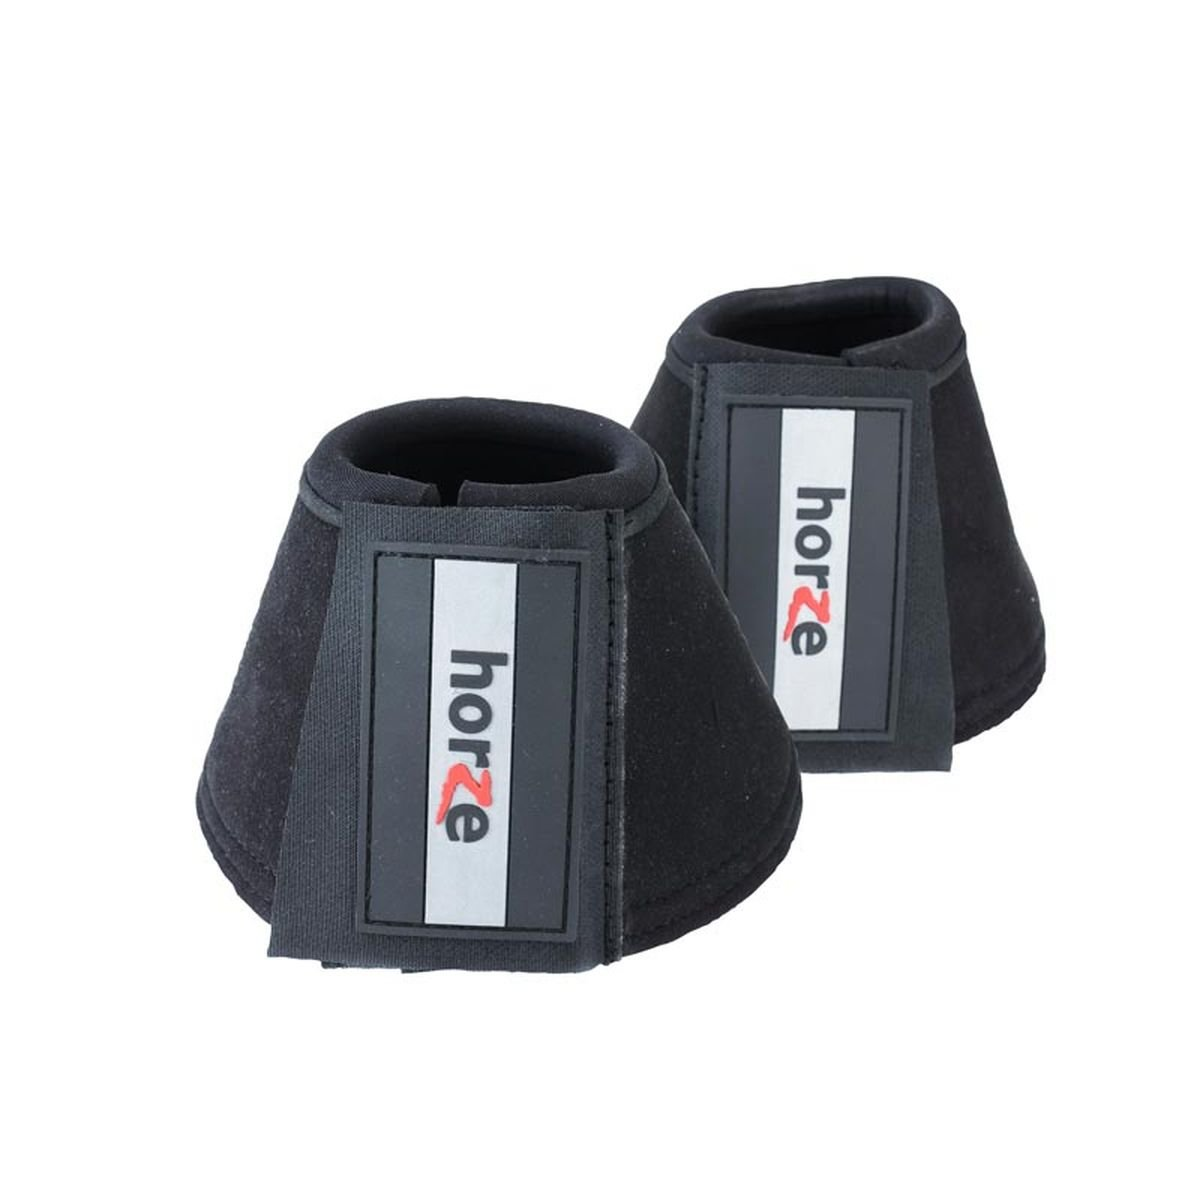 Horze Allround Bell Boots, Reinforced with Durable Synthetic Suede (Black(BL), X-Large)